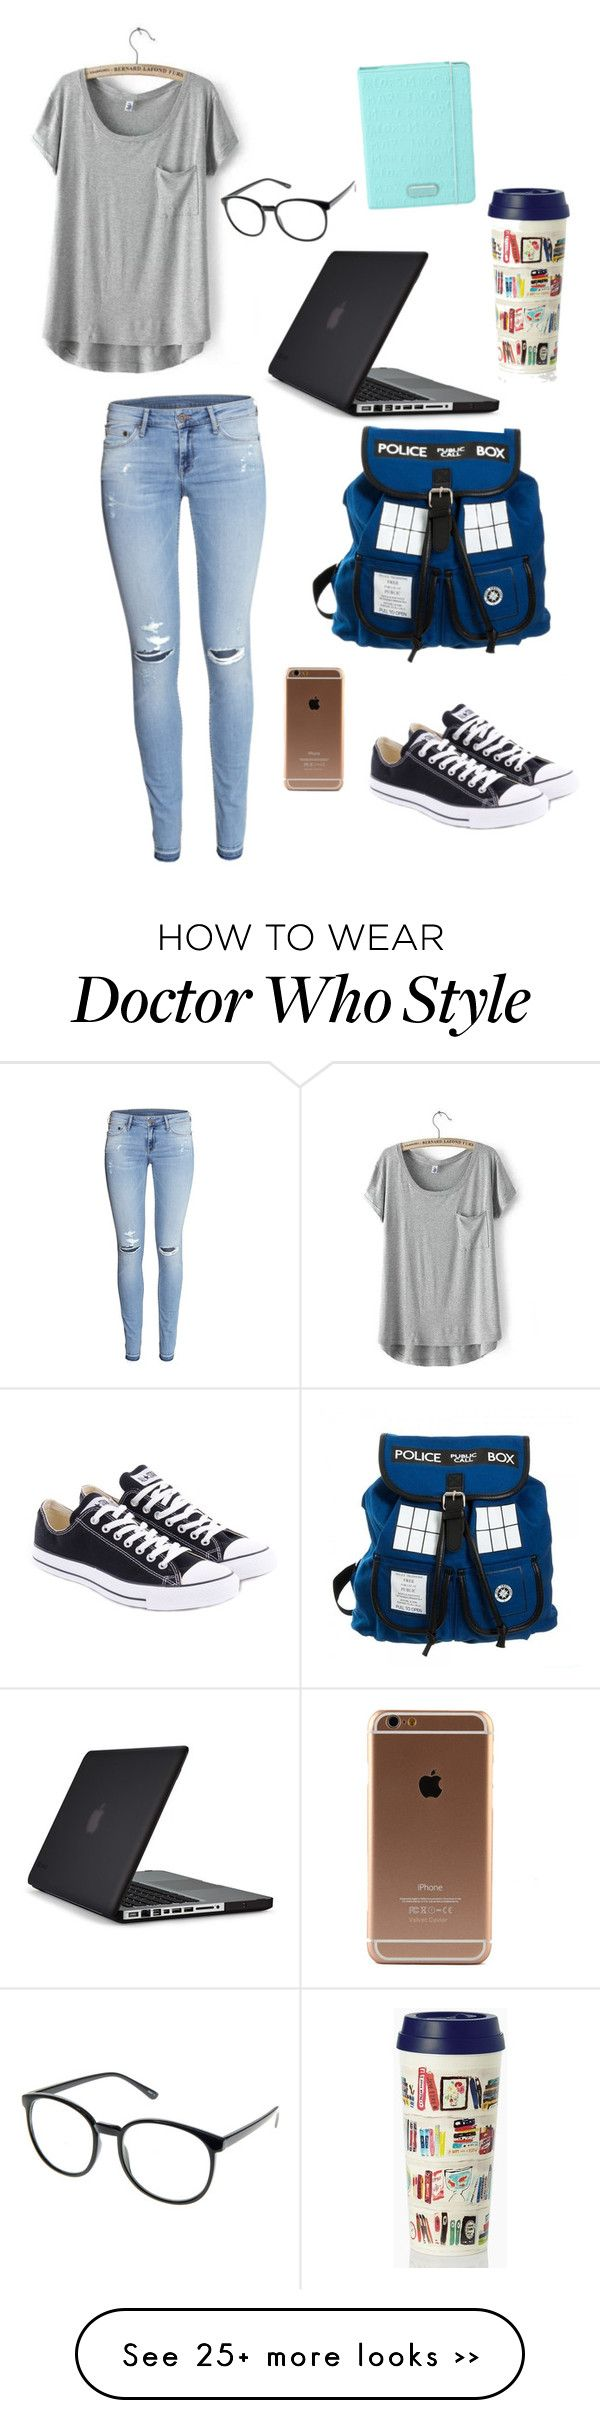 """""""Outfit for collage girl"""" by dumbdumb3 on Polyvore"""